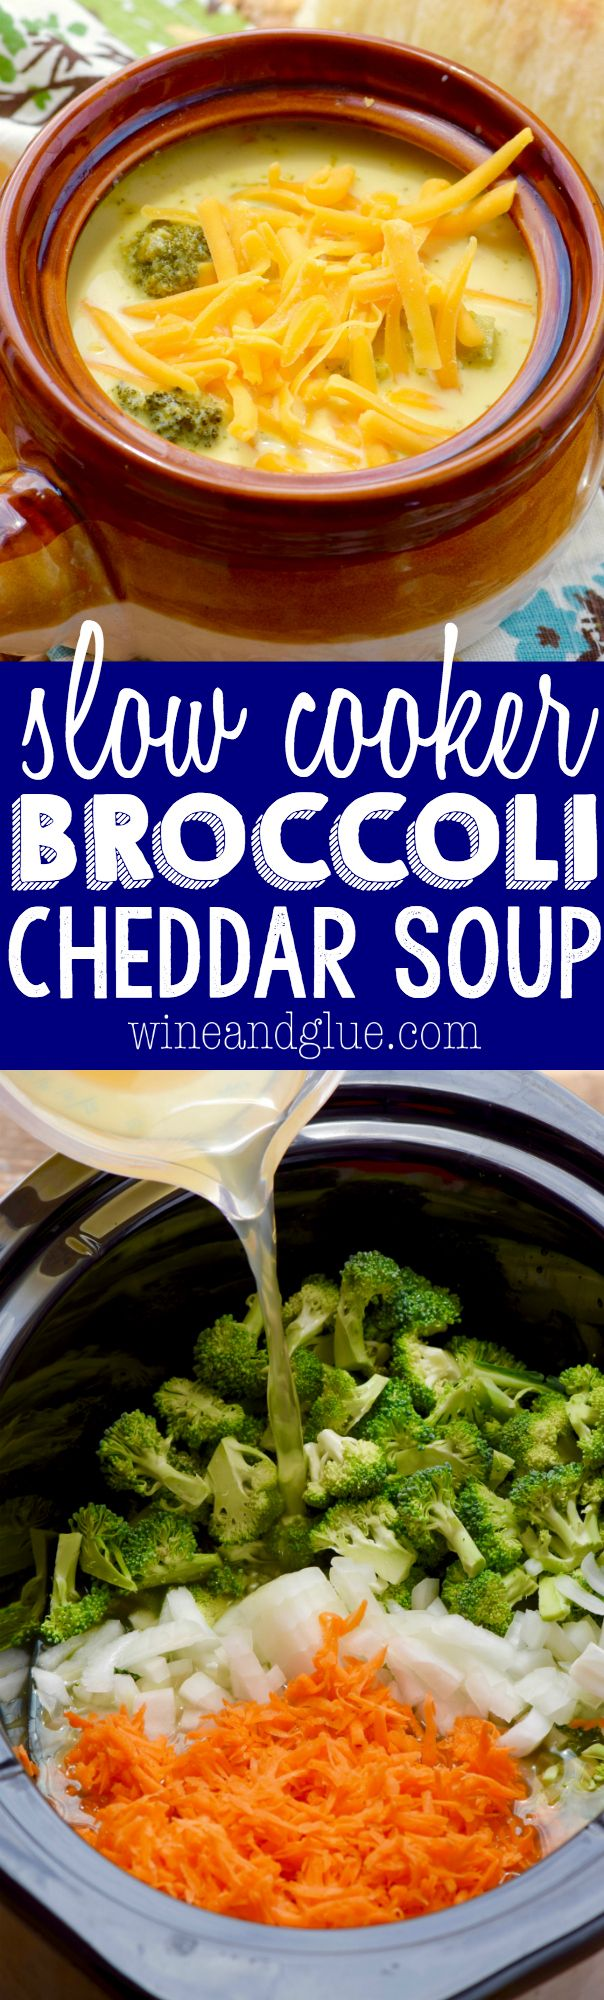 This Slow Cooker Broccoli Cheddar Soup is beyond simple, but so delicious! It definitely needs to be part of your dinner rotation!: